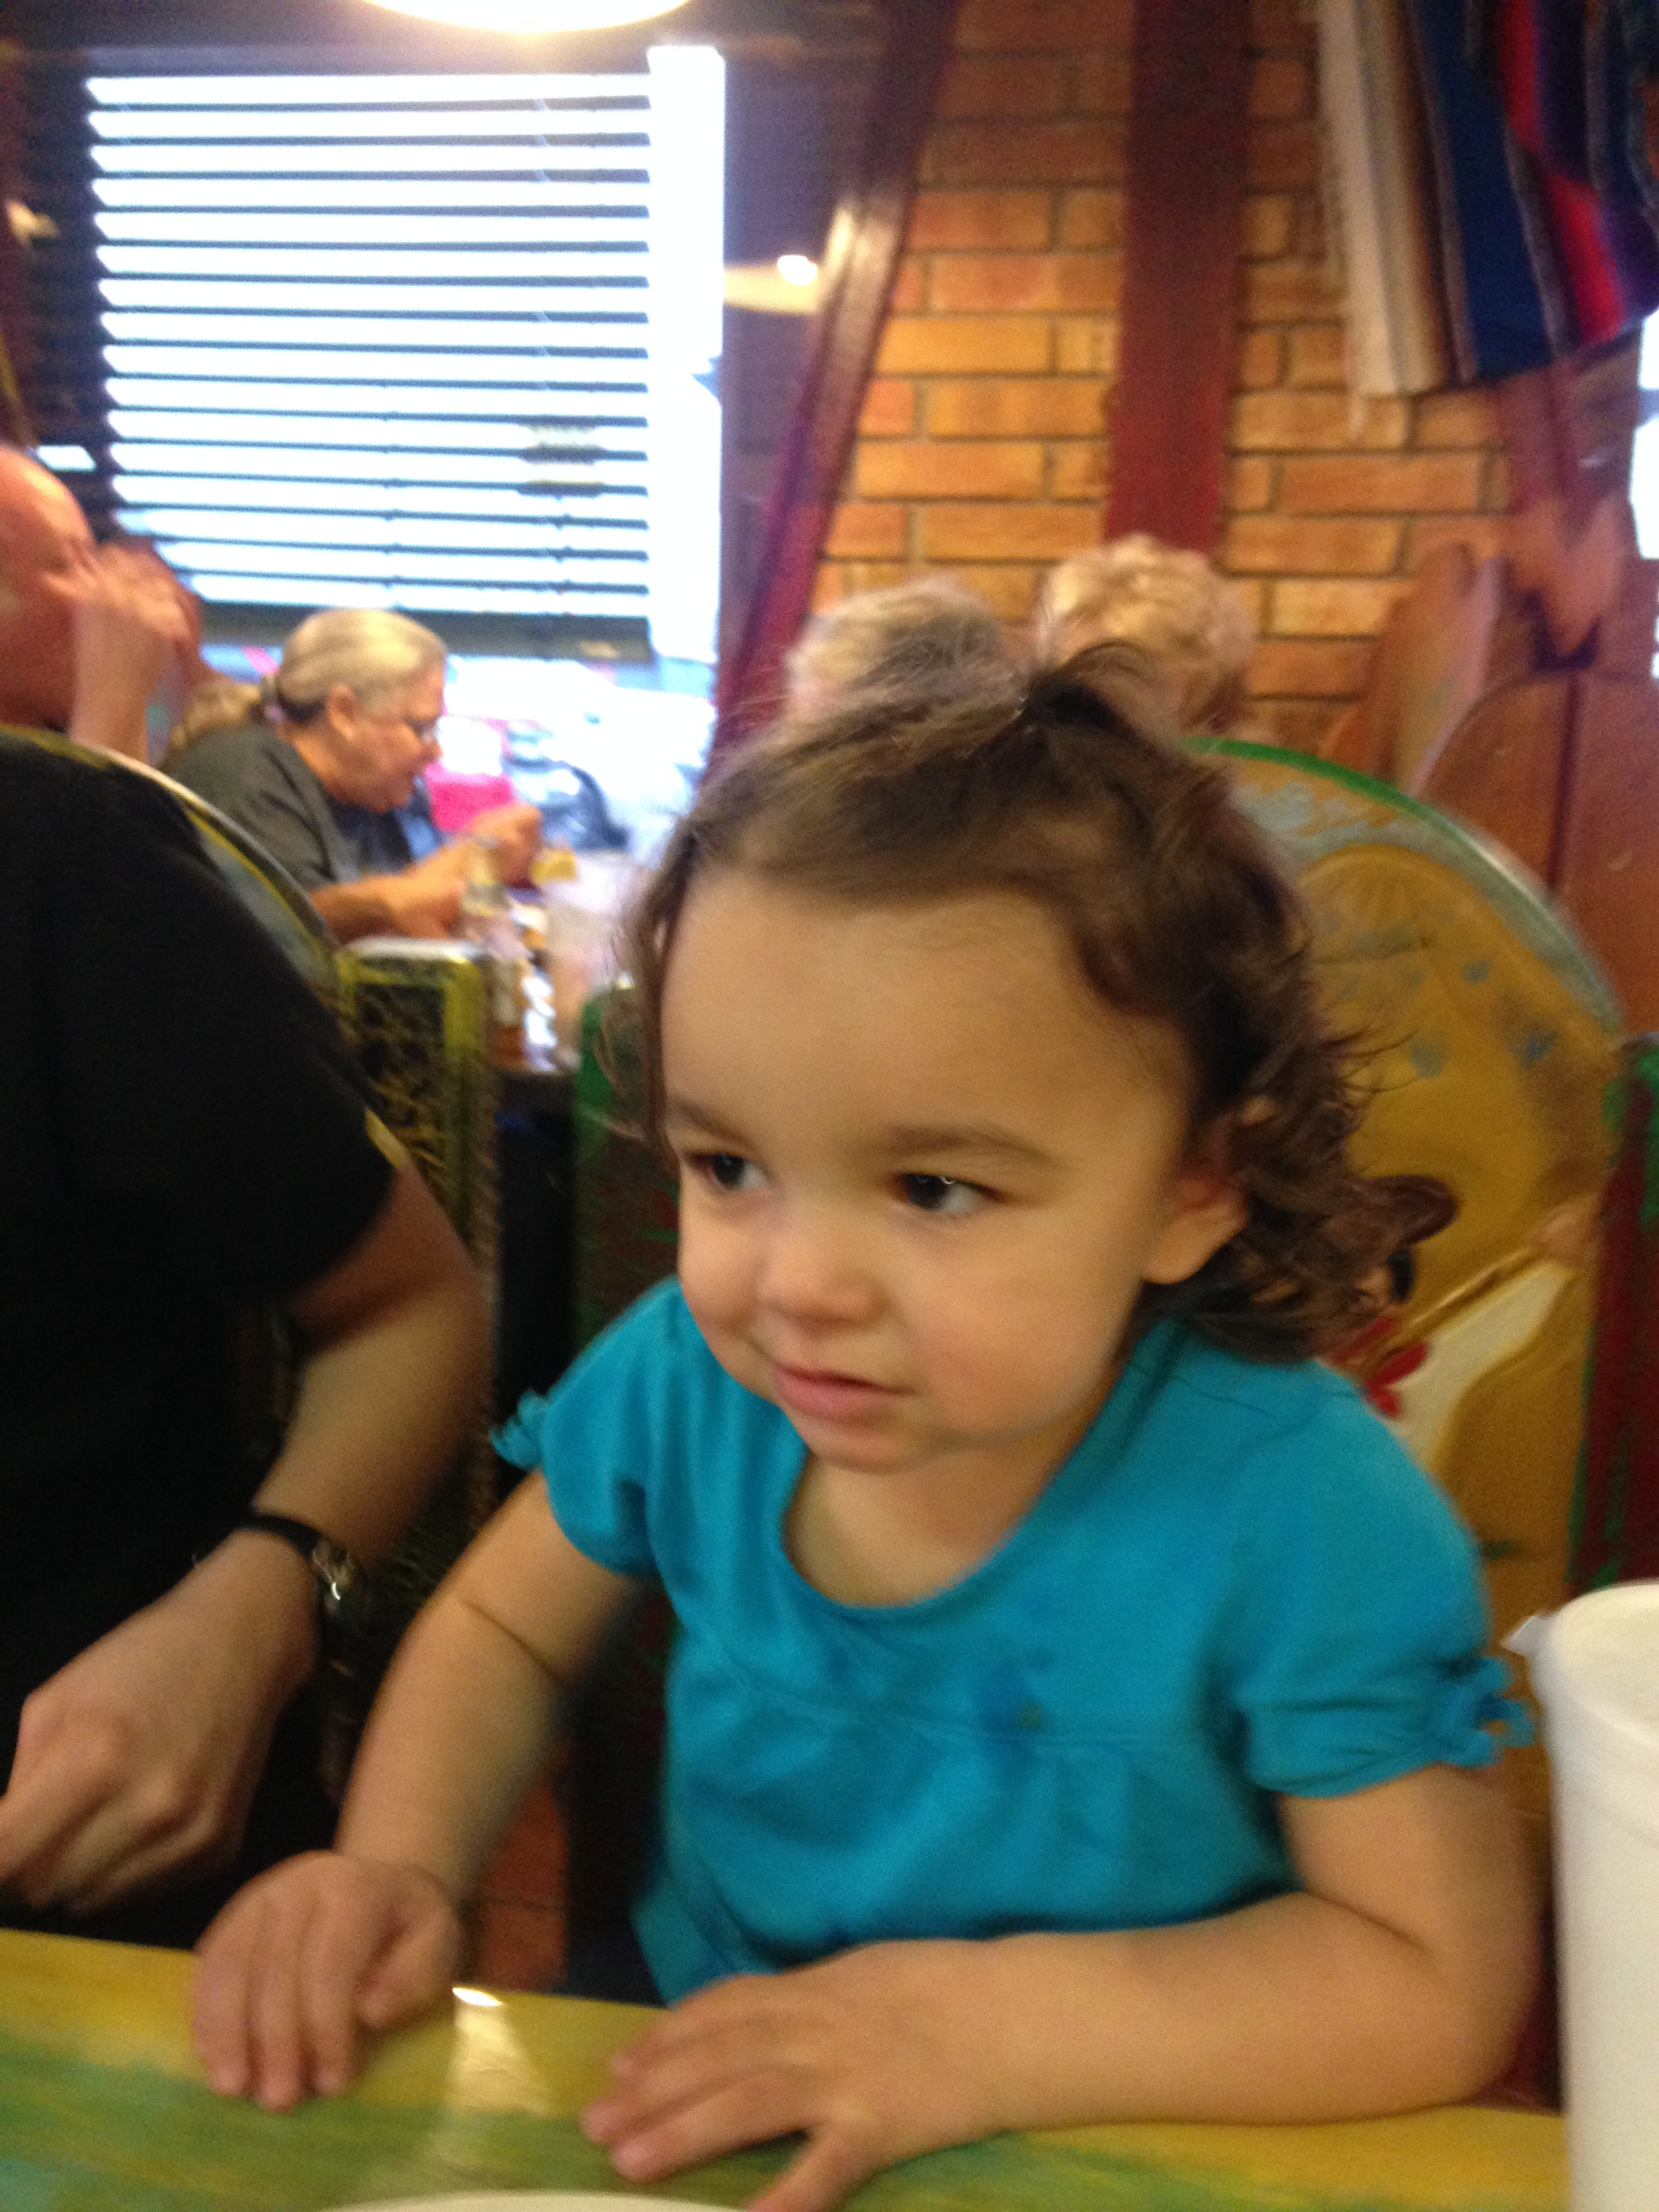 My great granddaughter: needs prayer for physical healing